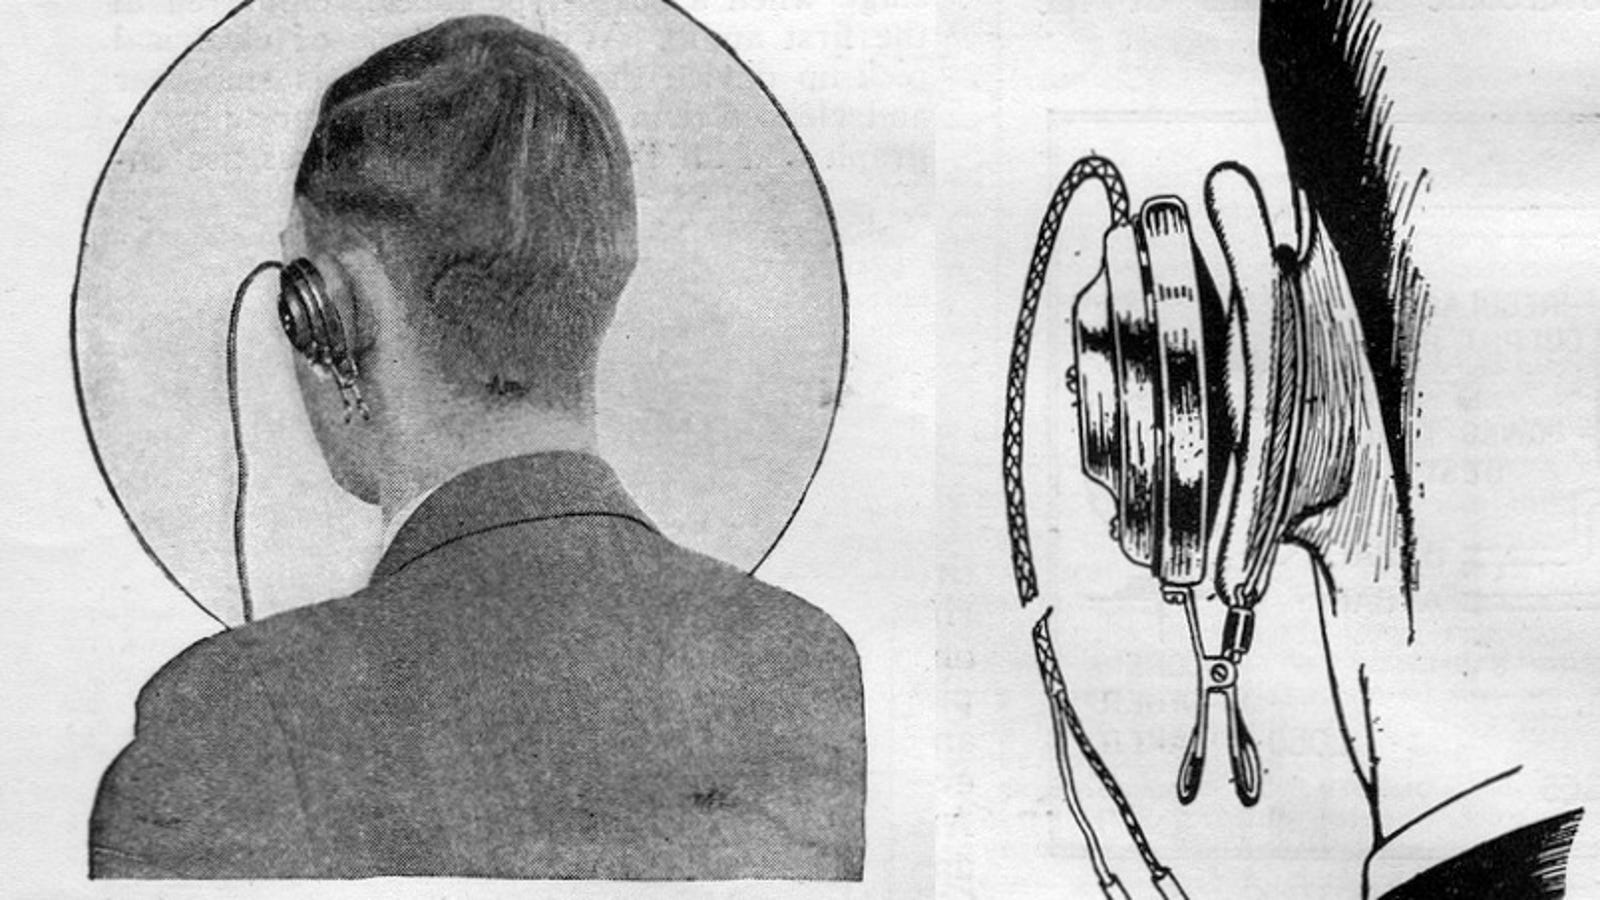 earbuds rubber tips beats - These Headphones From 1927 Look So Much Worse Than Earbuds